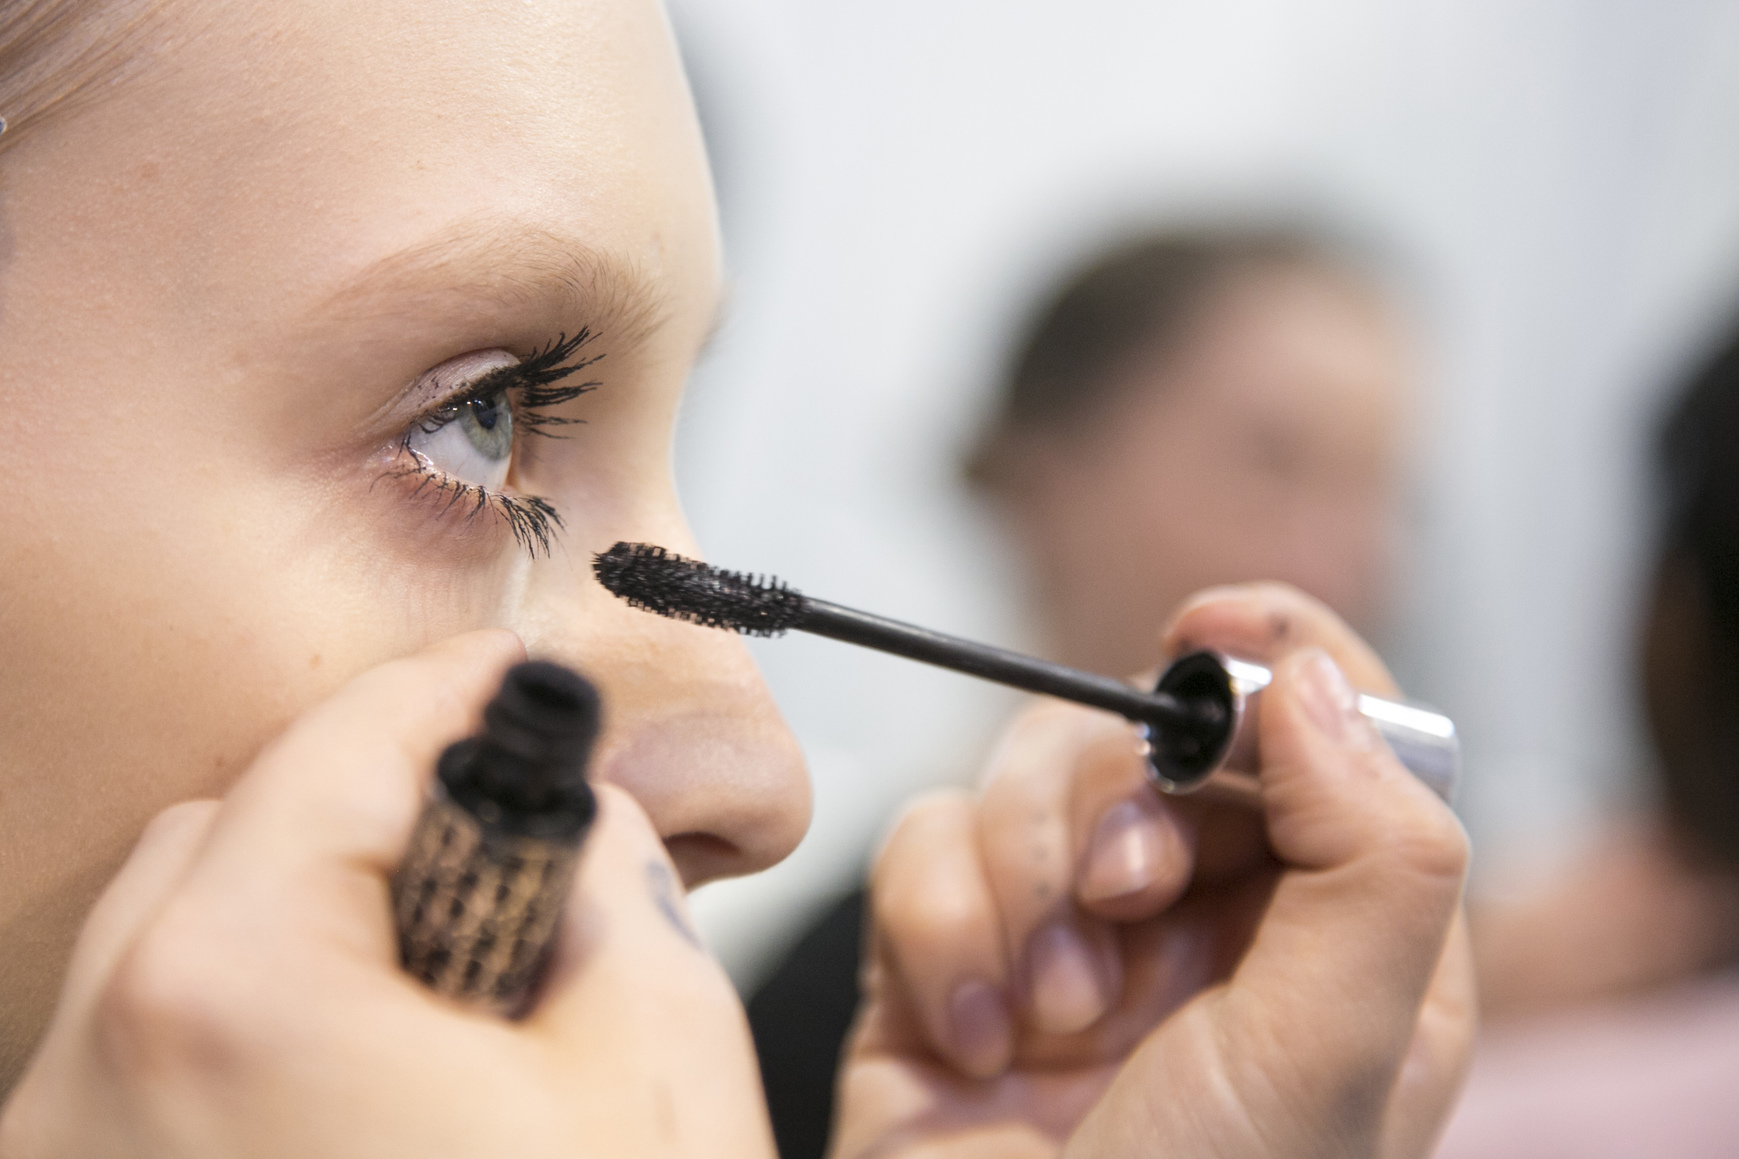 Once you see the velvet lash trend, you'll never look back